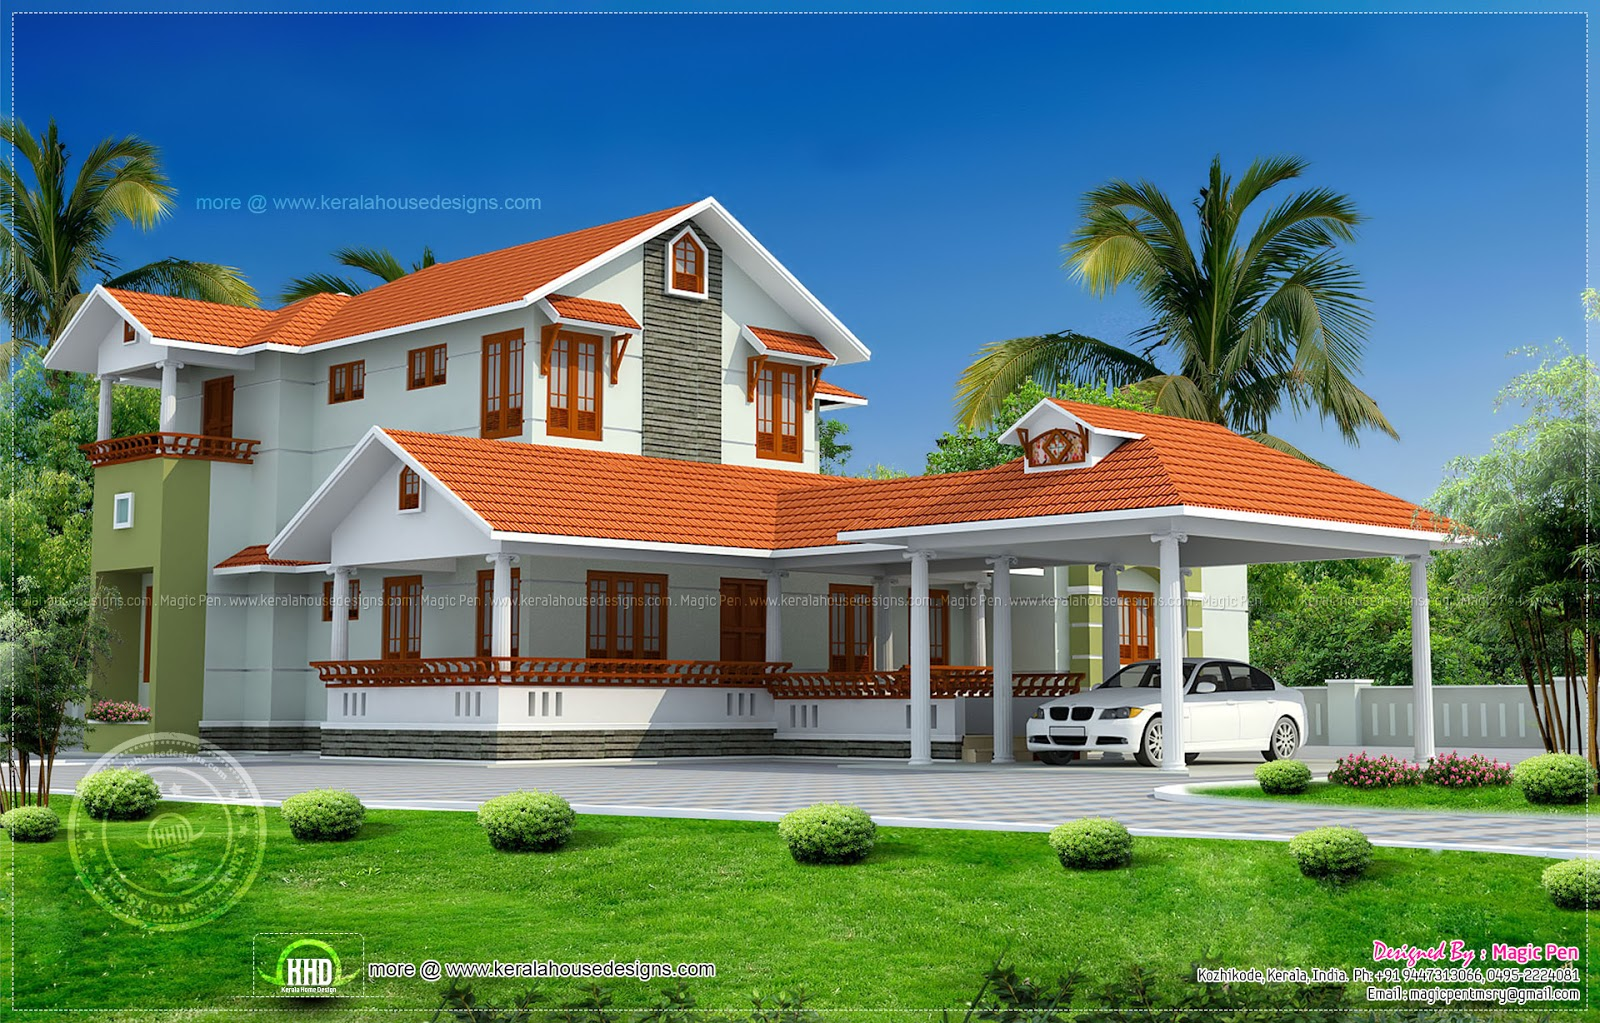 Kerala model double storied house kerala home design and for Kerala home designs photos in double floor